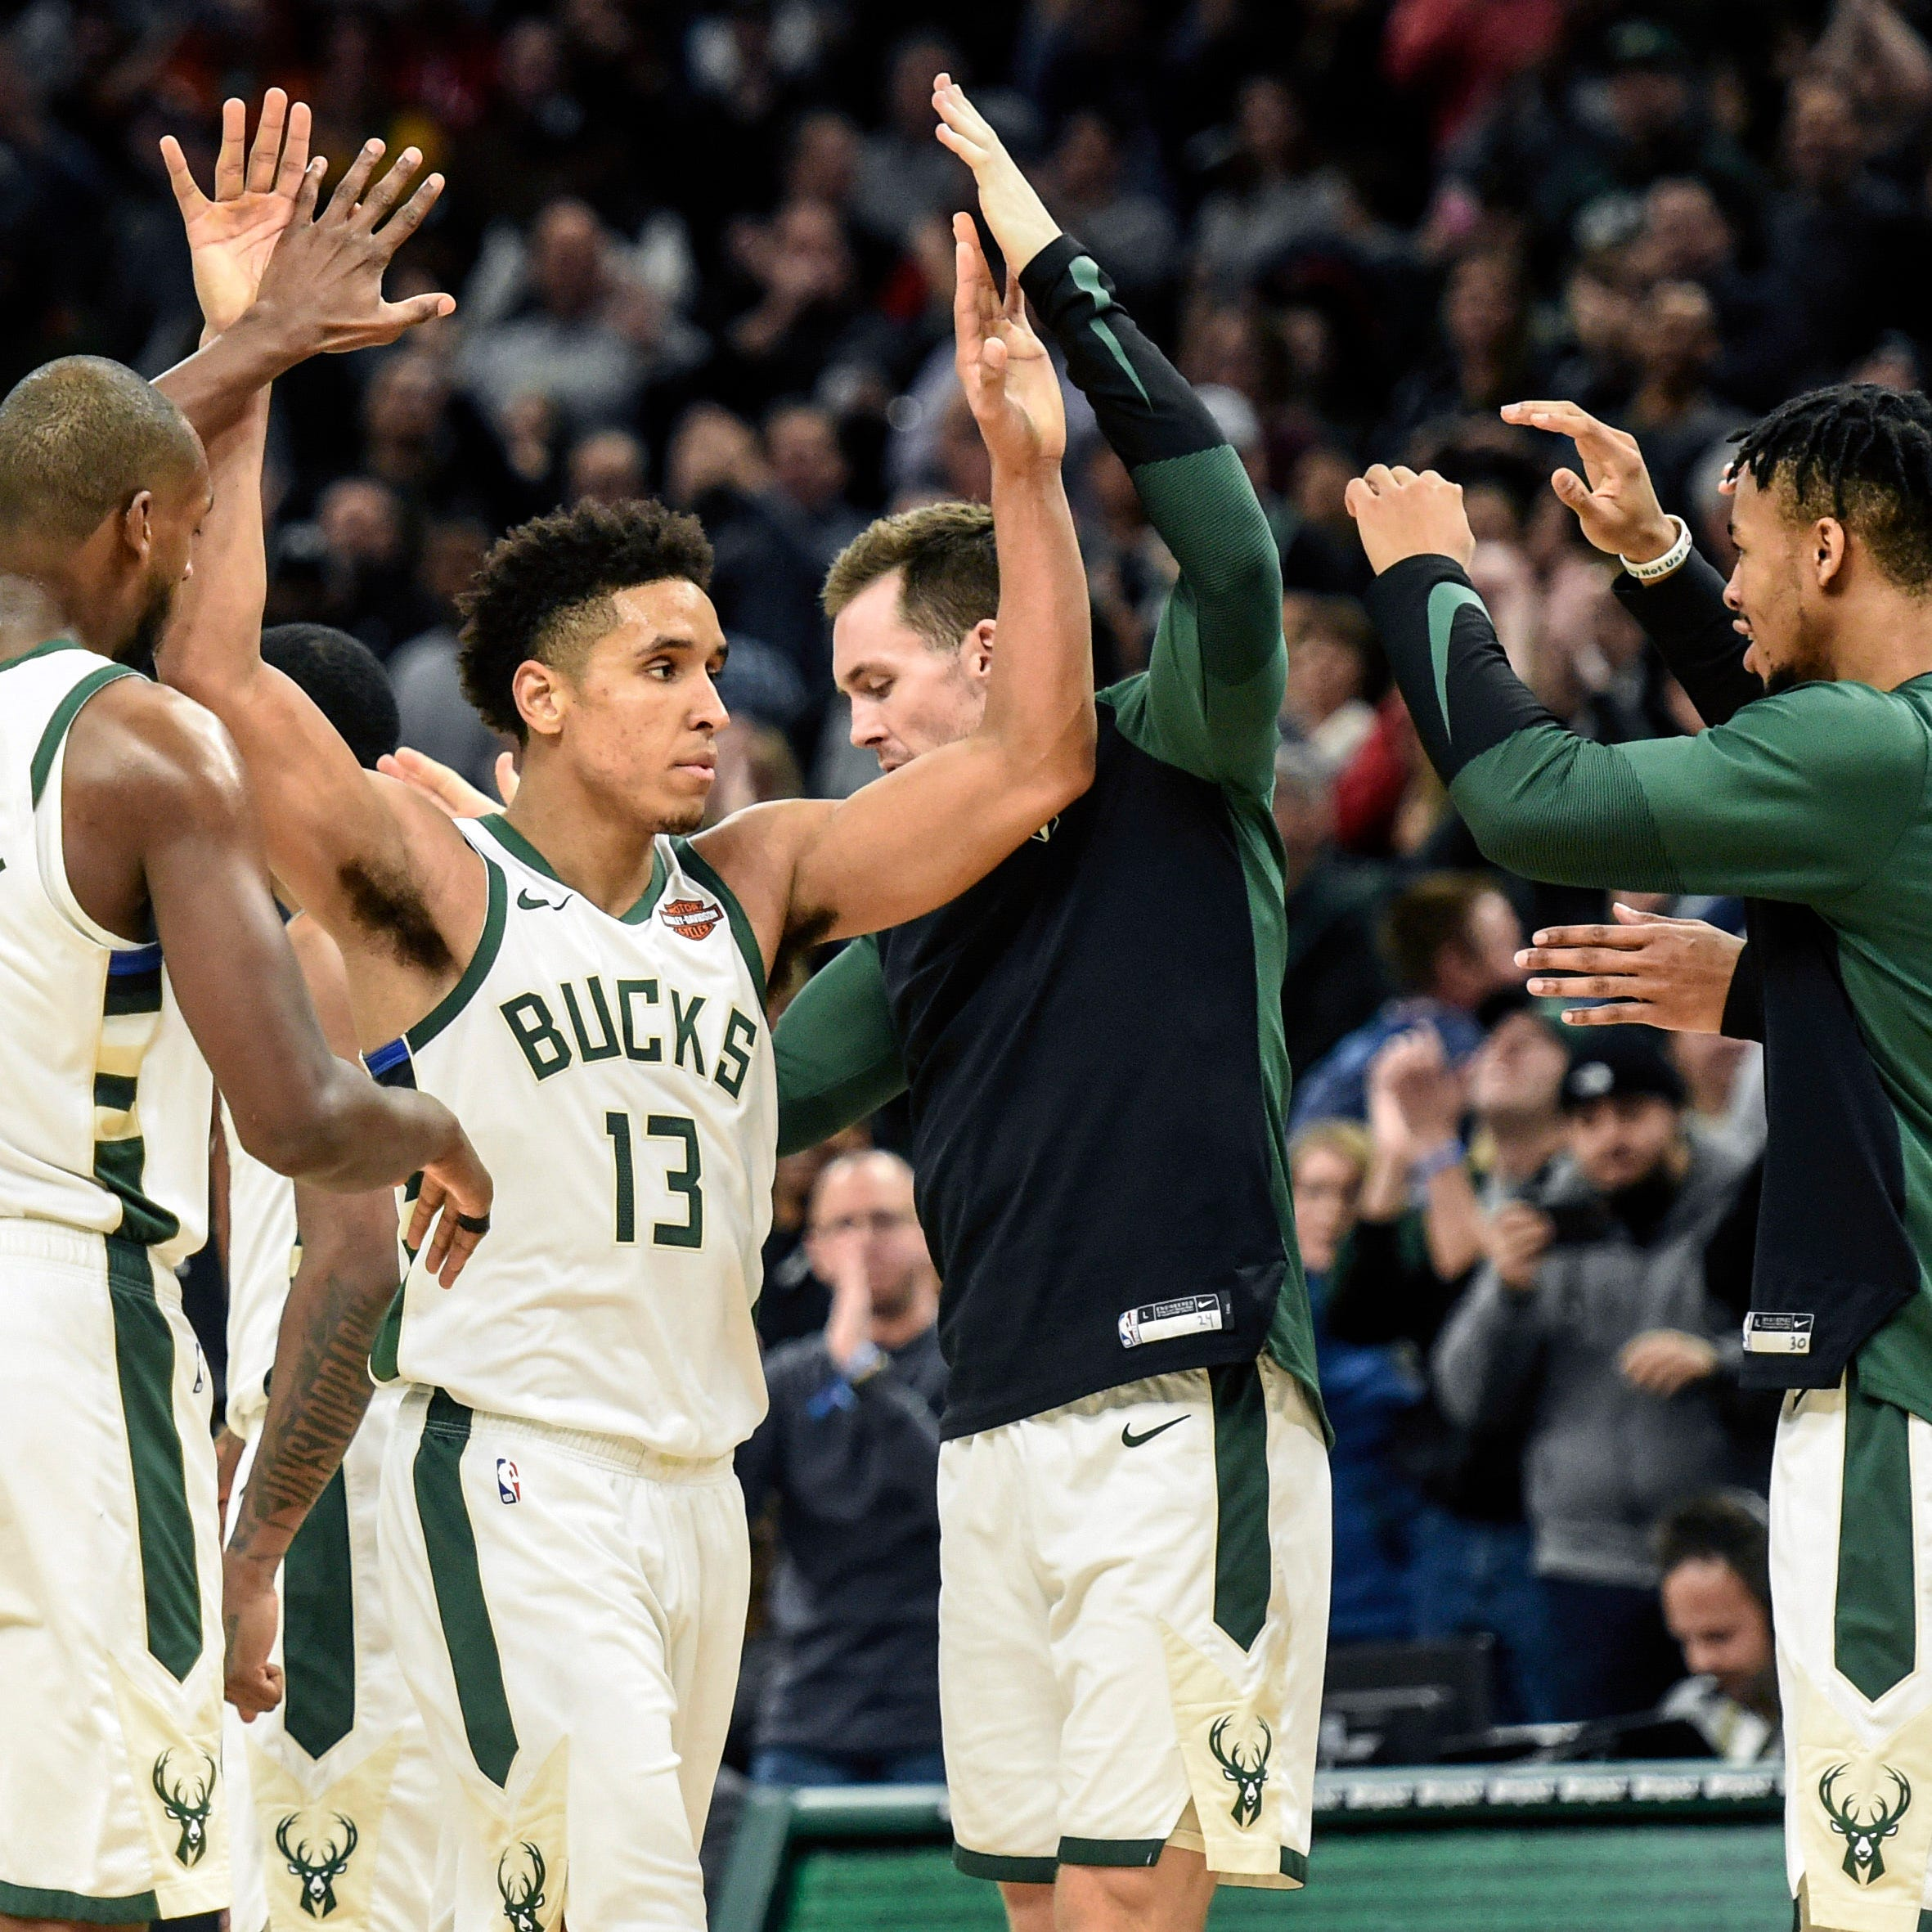 Bucks hope to get better clarity in the next couple of days on Malcolm Brogdon's return